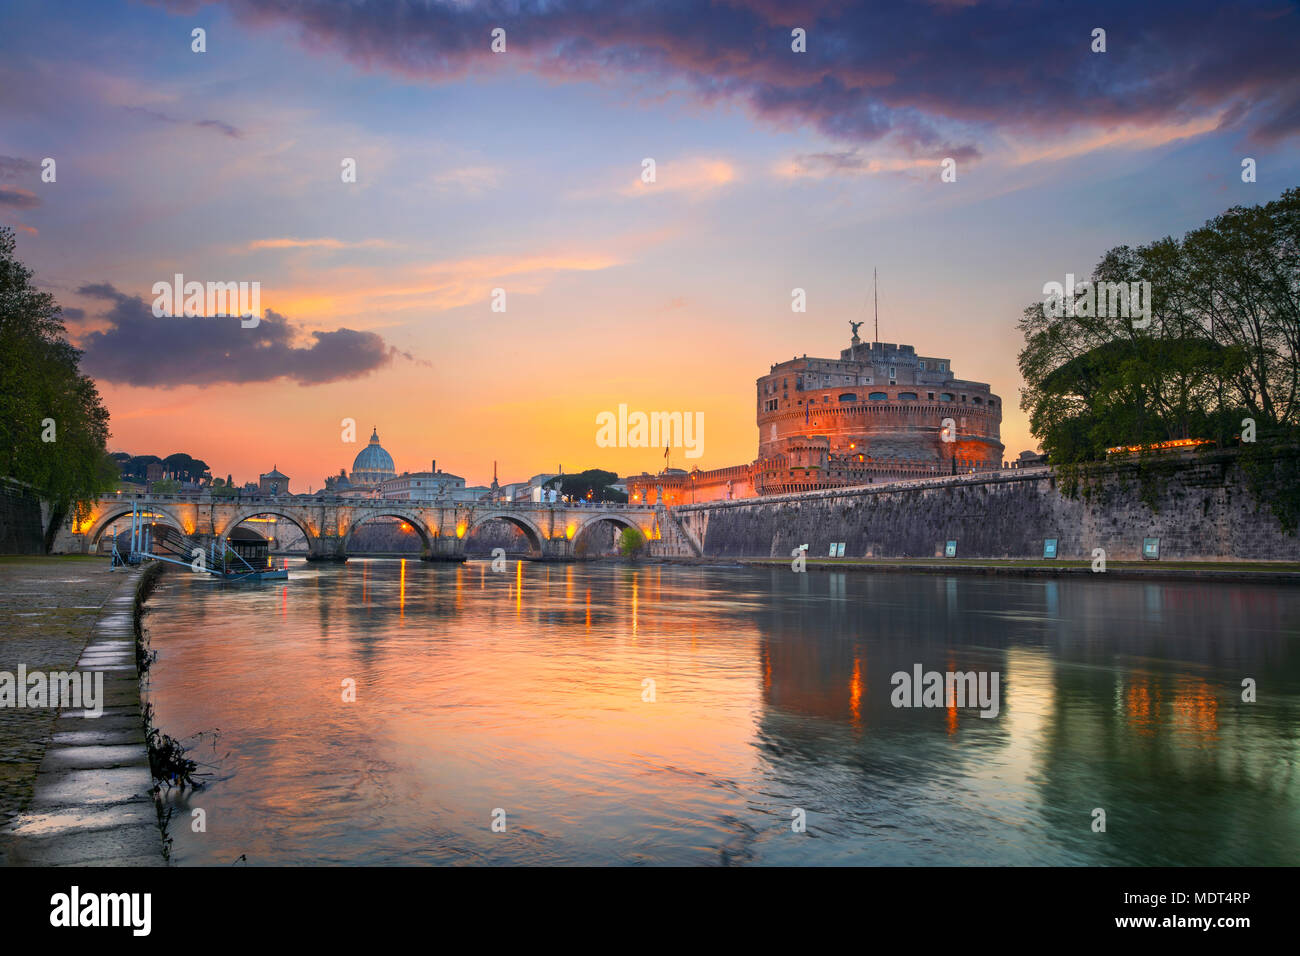 Rome. Image of the Castle of Holy Angel and Holy Angel Bridge over the Tiber River in Rome at sunset. Stock Photo